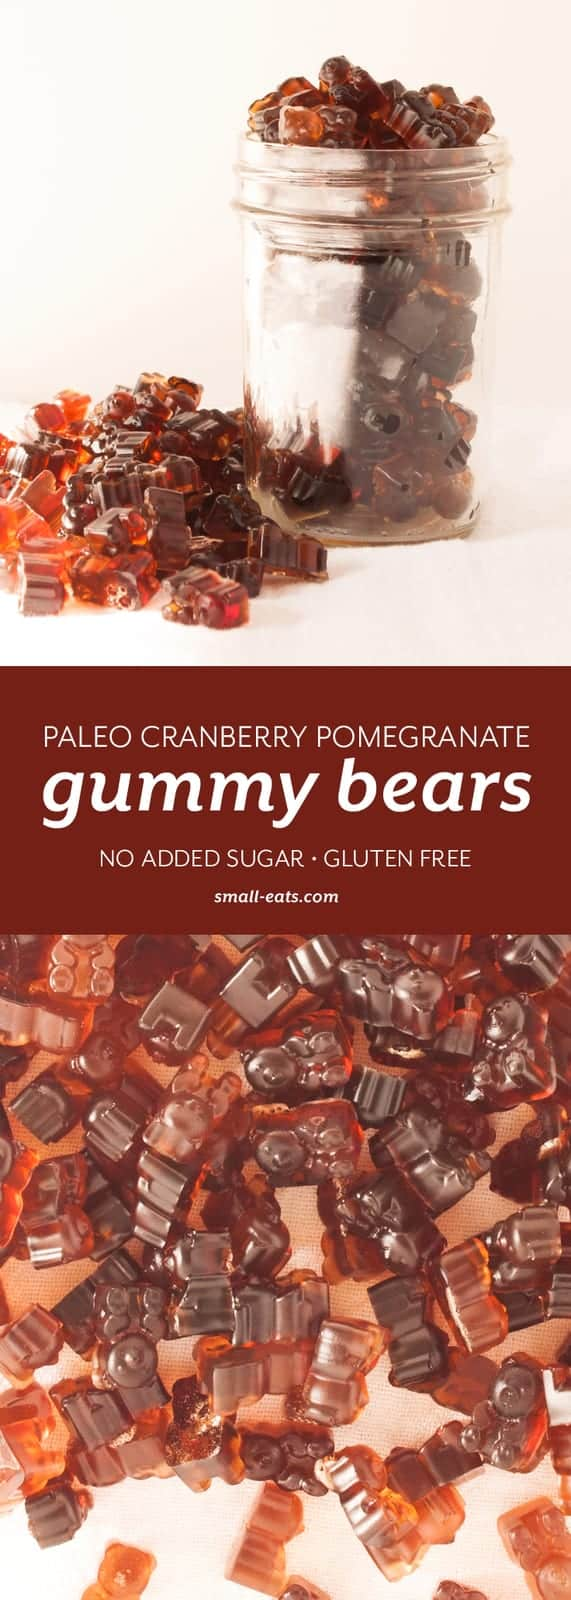 Upgrade your gummy bear experience with these easy, paleo friendly gummy bears sweetened with wintery flavors. | Paleo Cranberry Pomegranate Gummy Bears from small-eats.com